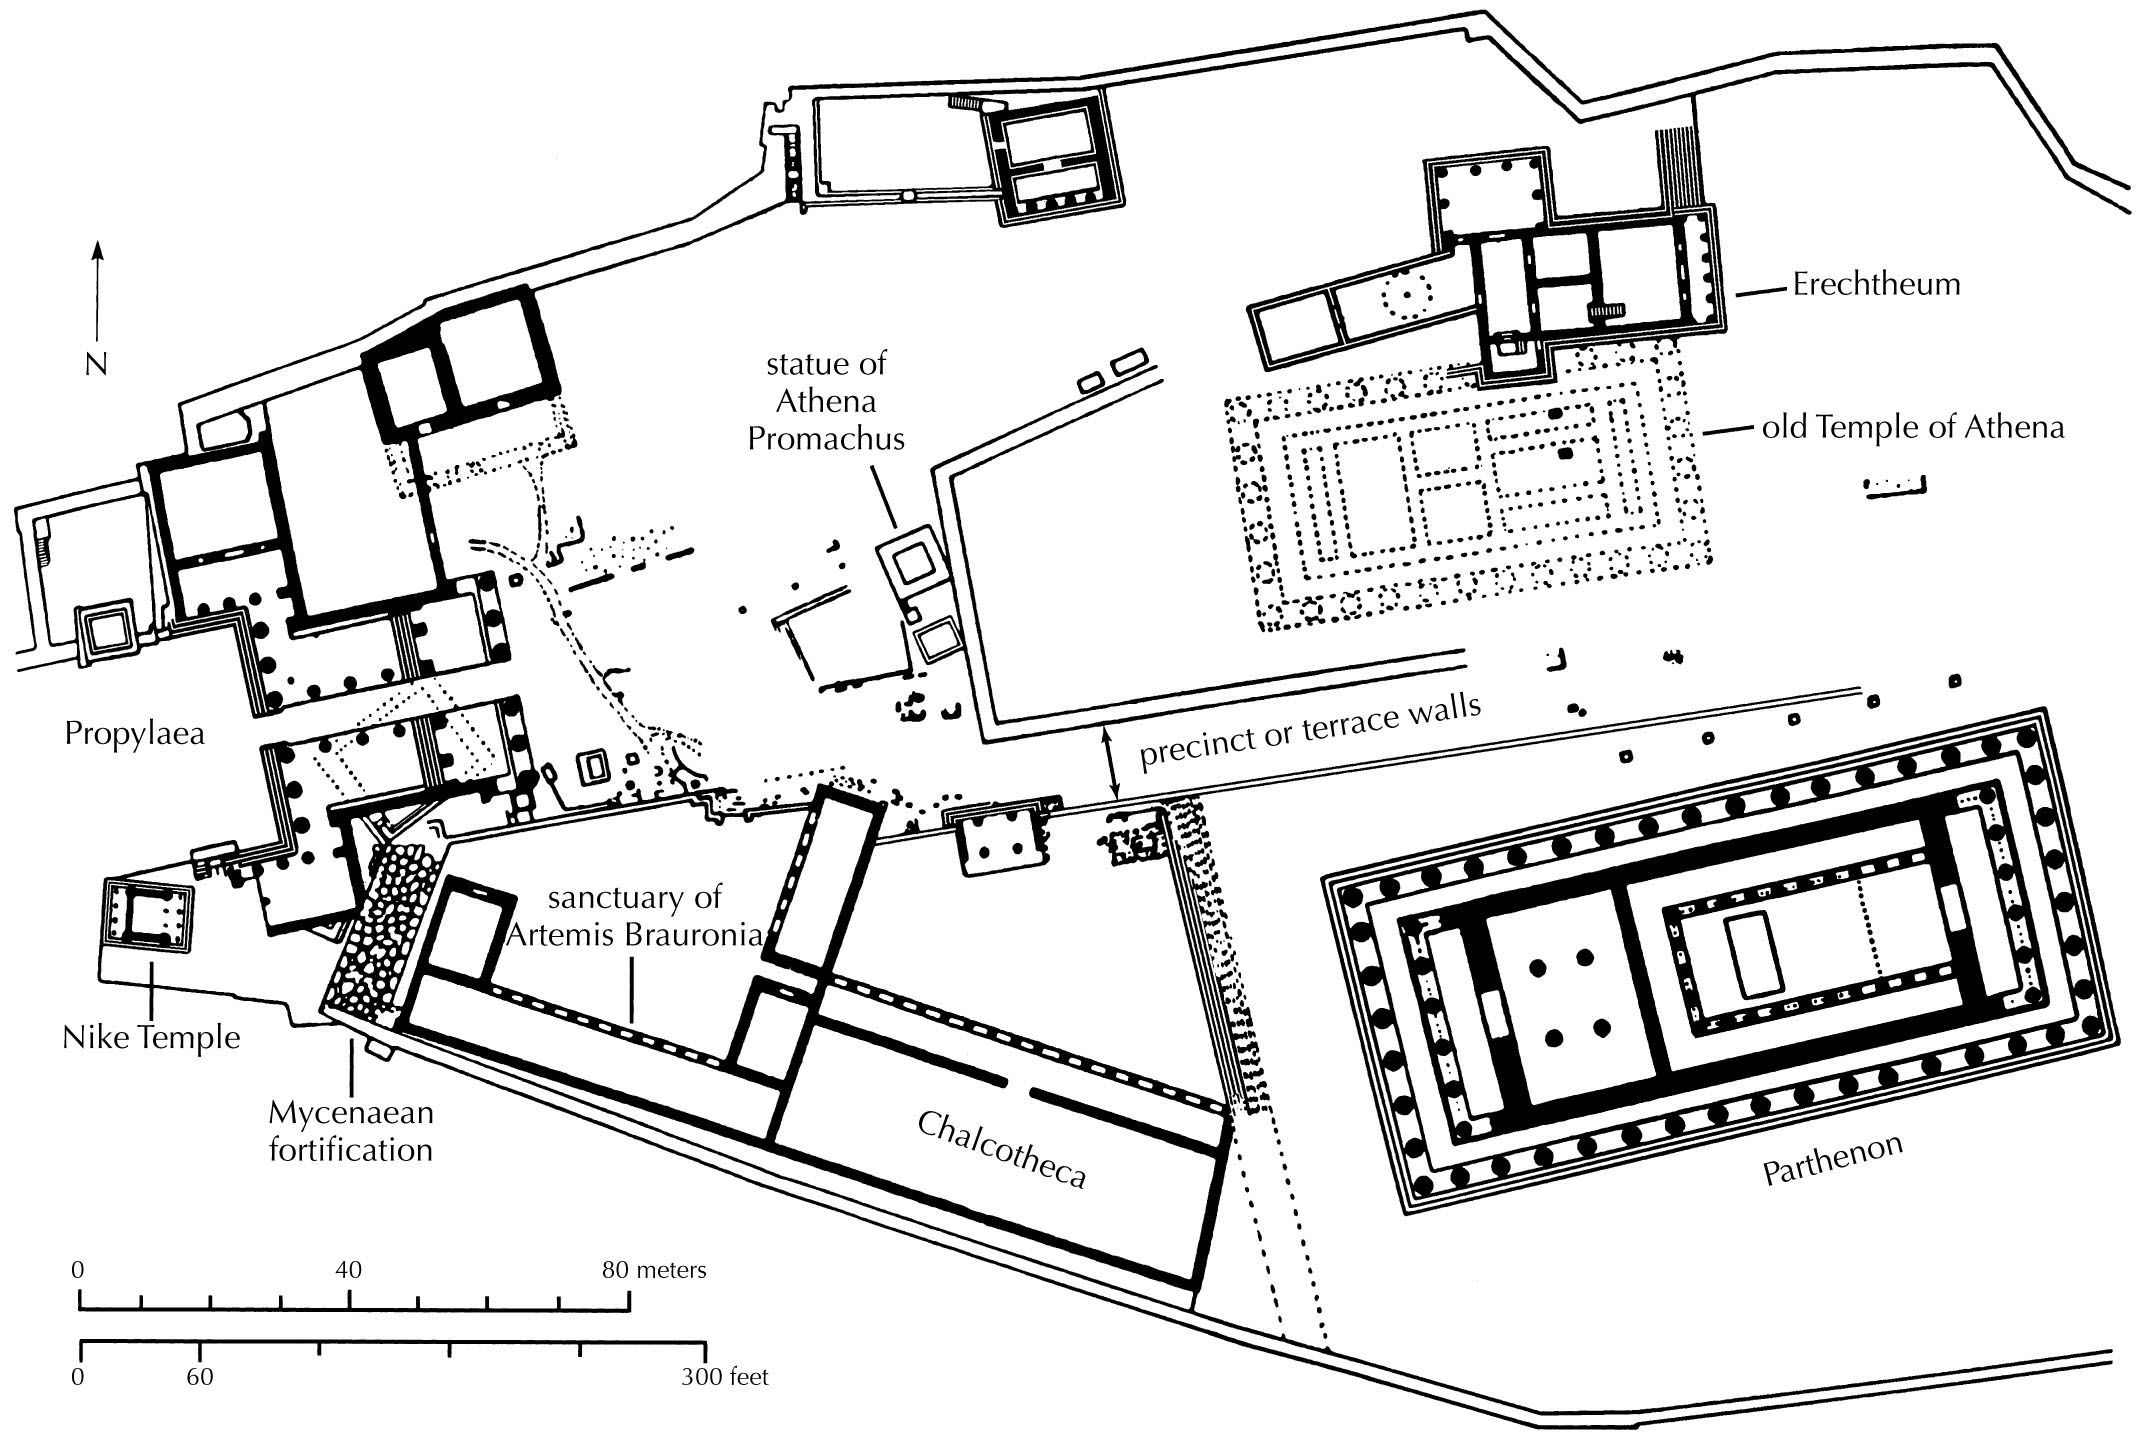 Plan Of The Akropolis At Athens In 400 Bce